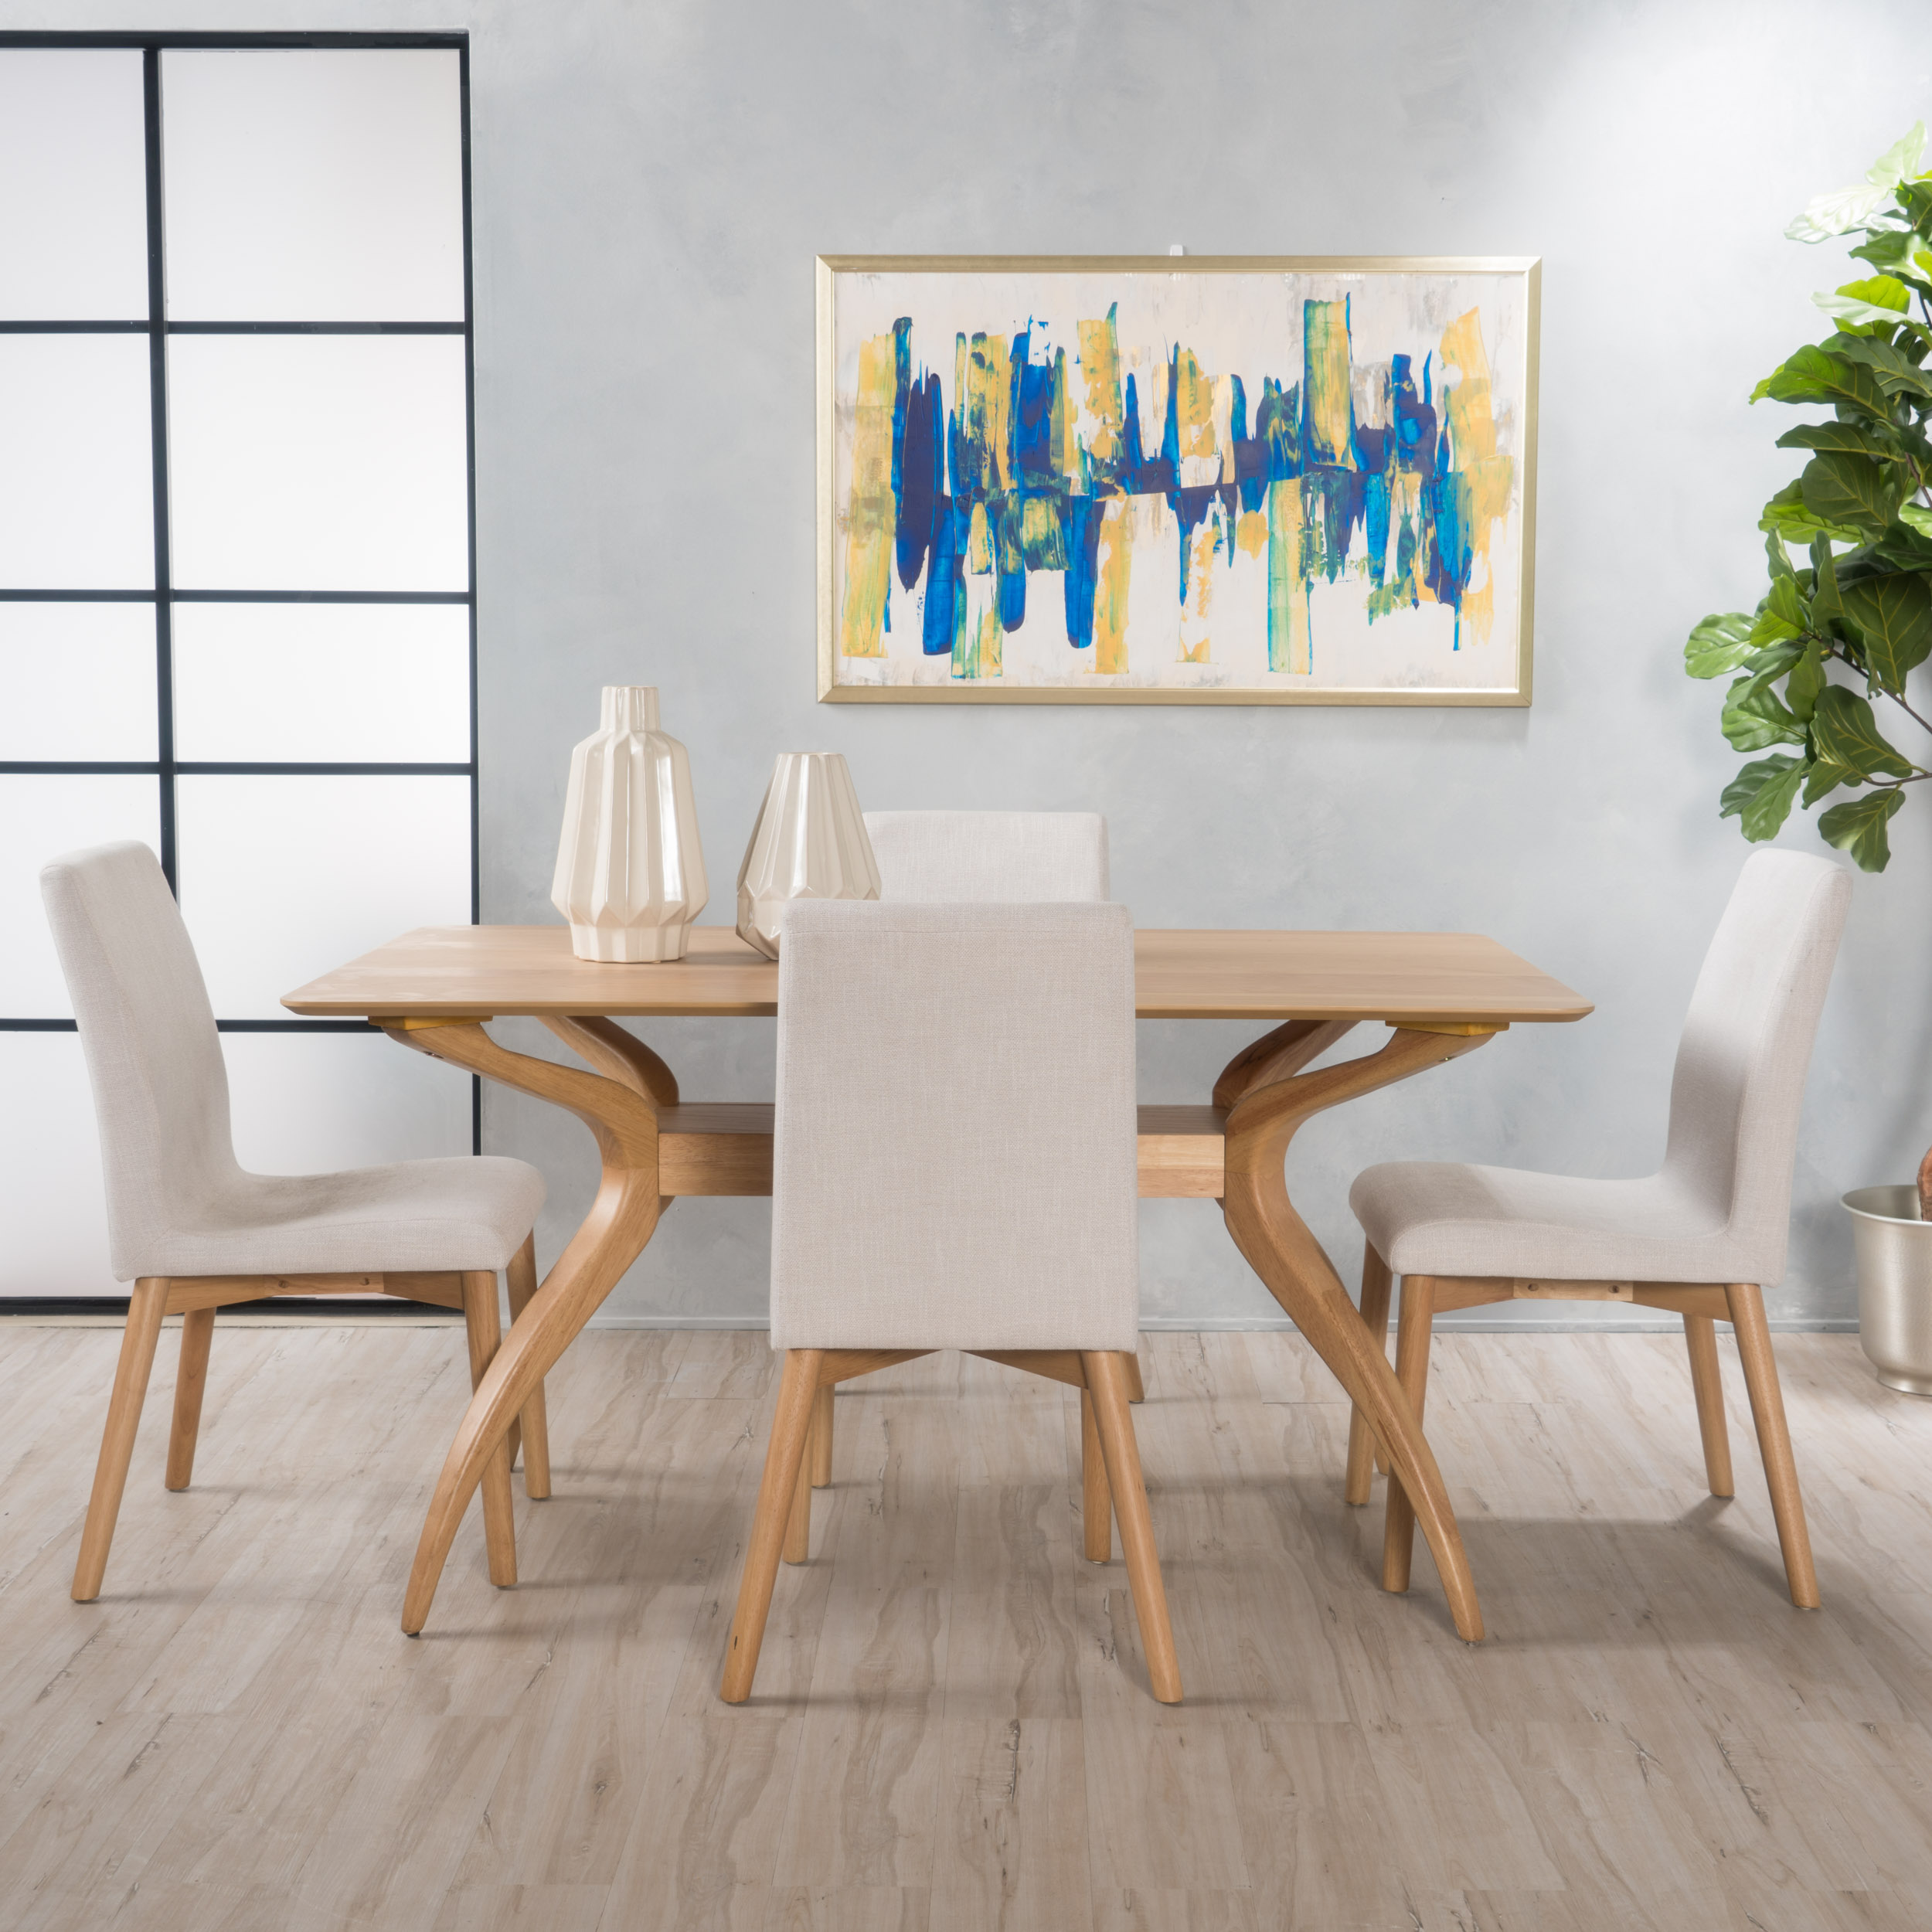 Noble House Keaton Mid-Century Modern Rectangular 5 Piece Wood Dining Set, Natural Oak, Light Beige